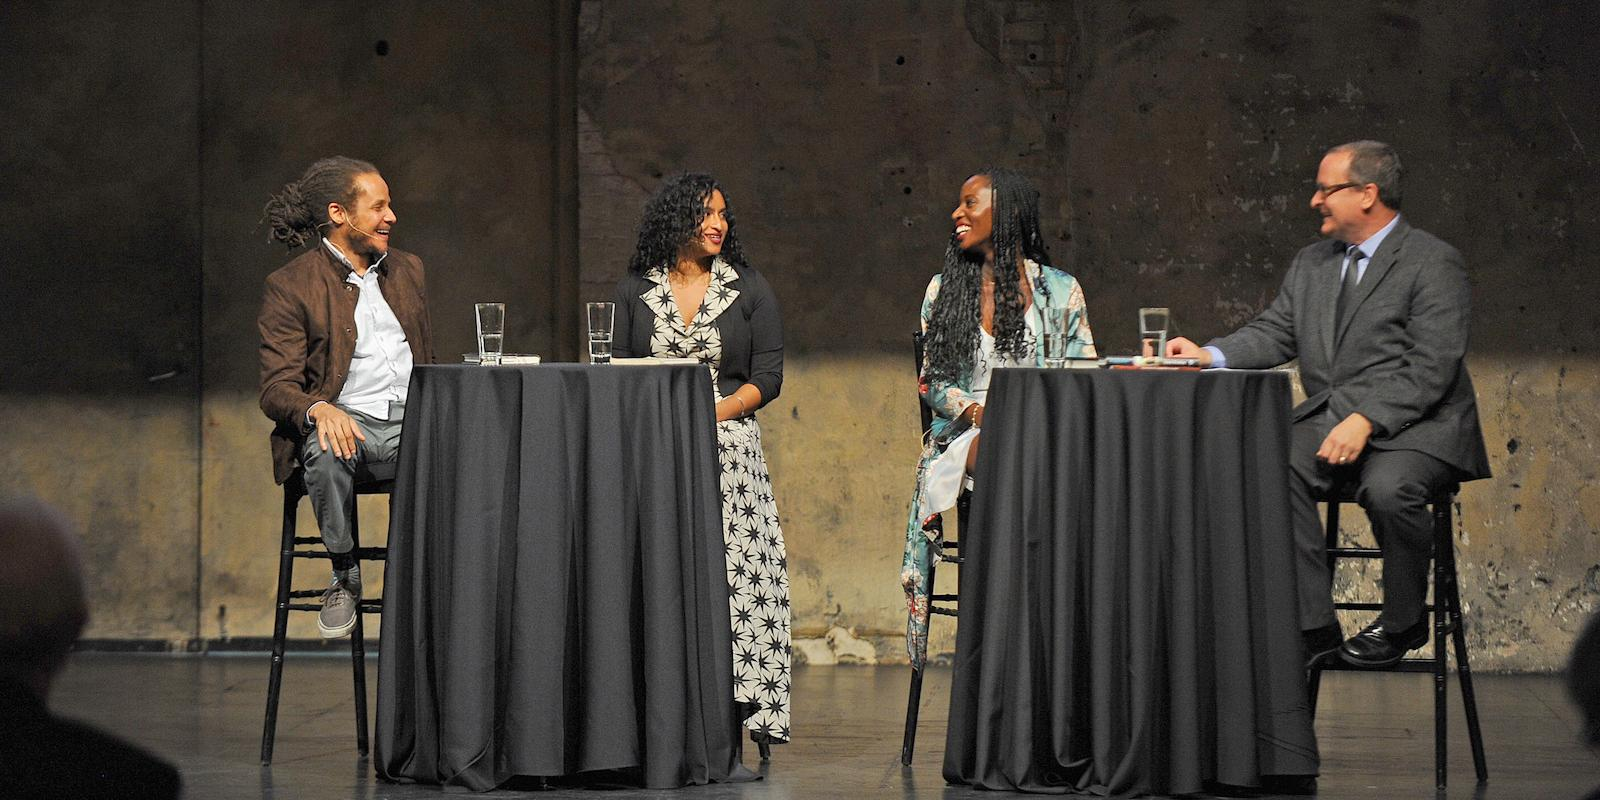 Jamel Brinkley, Tarfia Faizullah, Wayetu Moore, and Jeff Shotts at the 2018 Graywolf Literary Salon